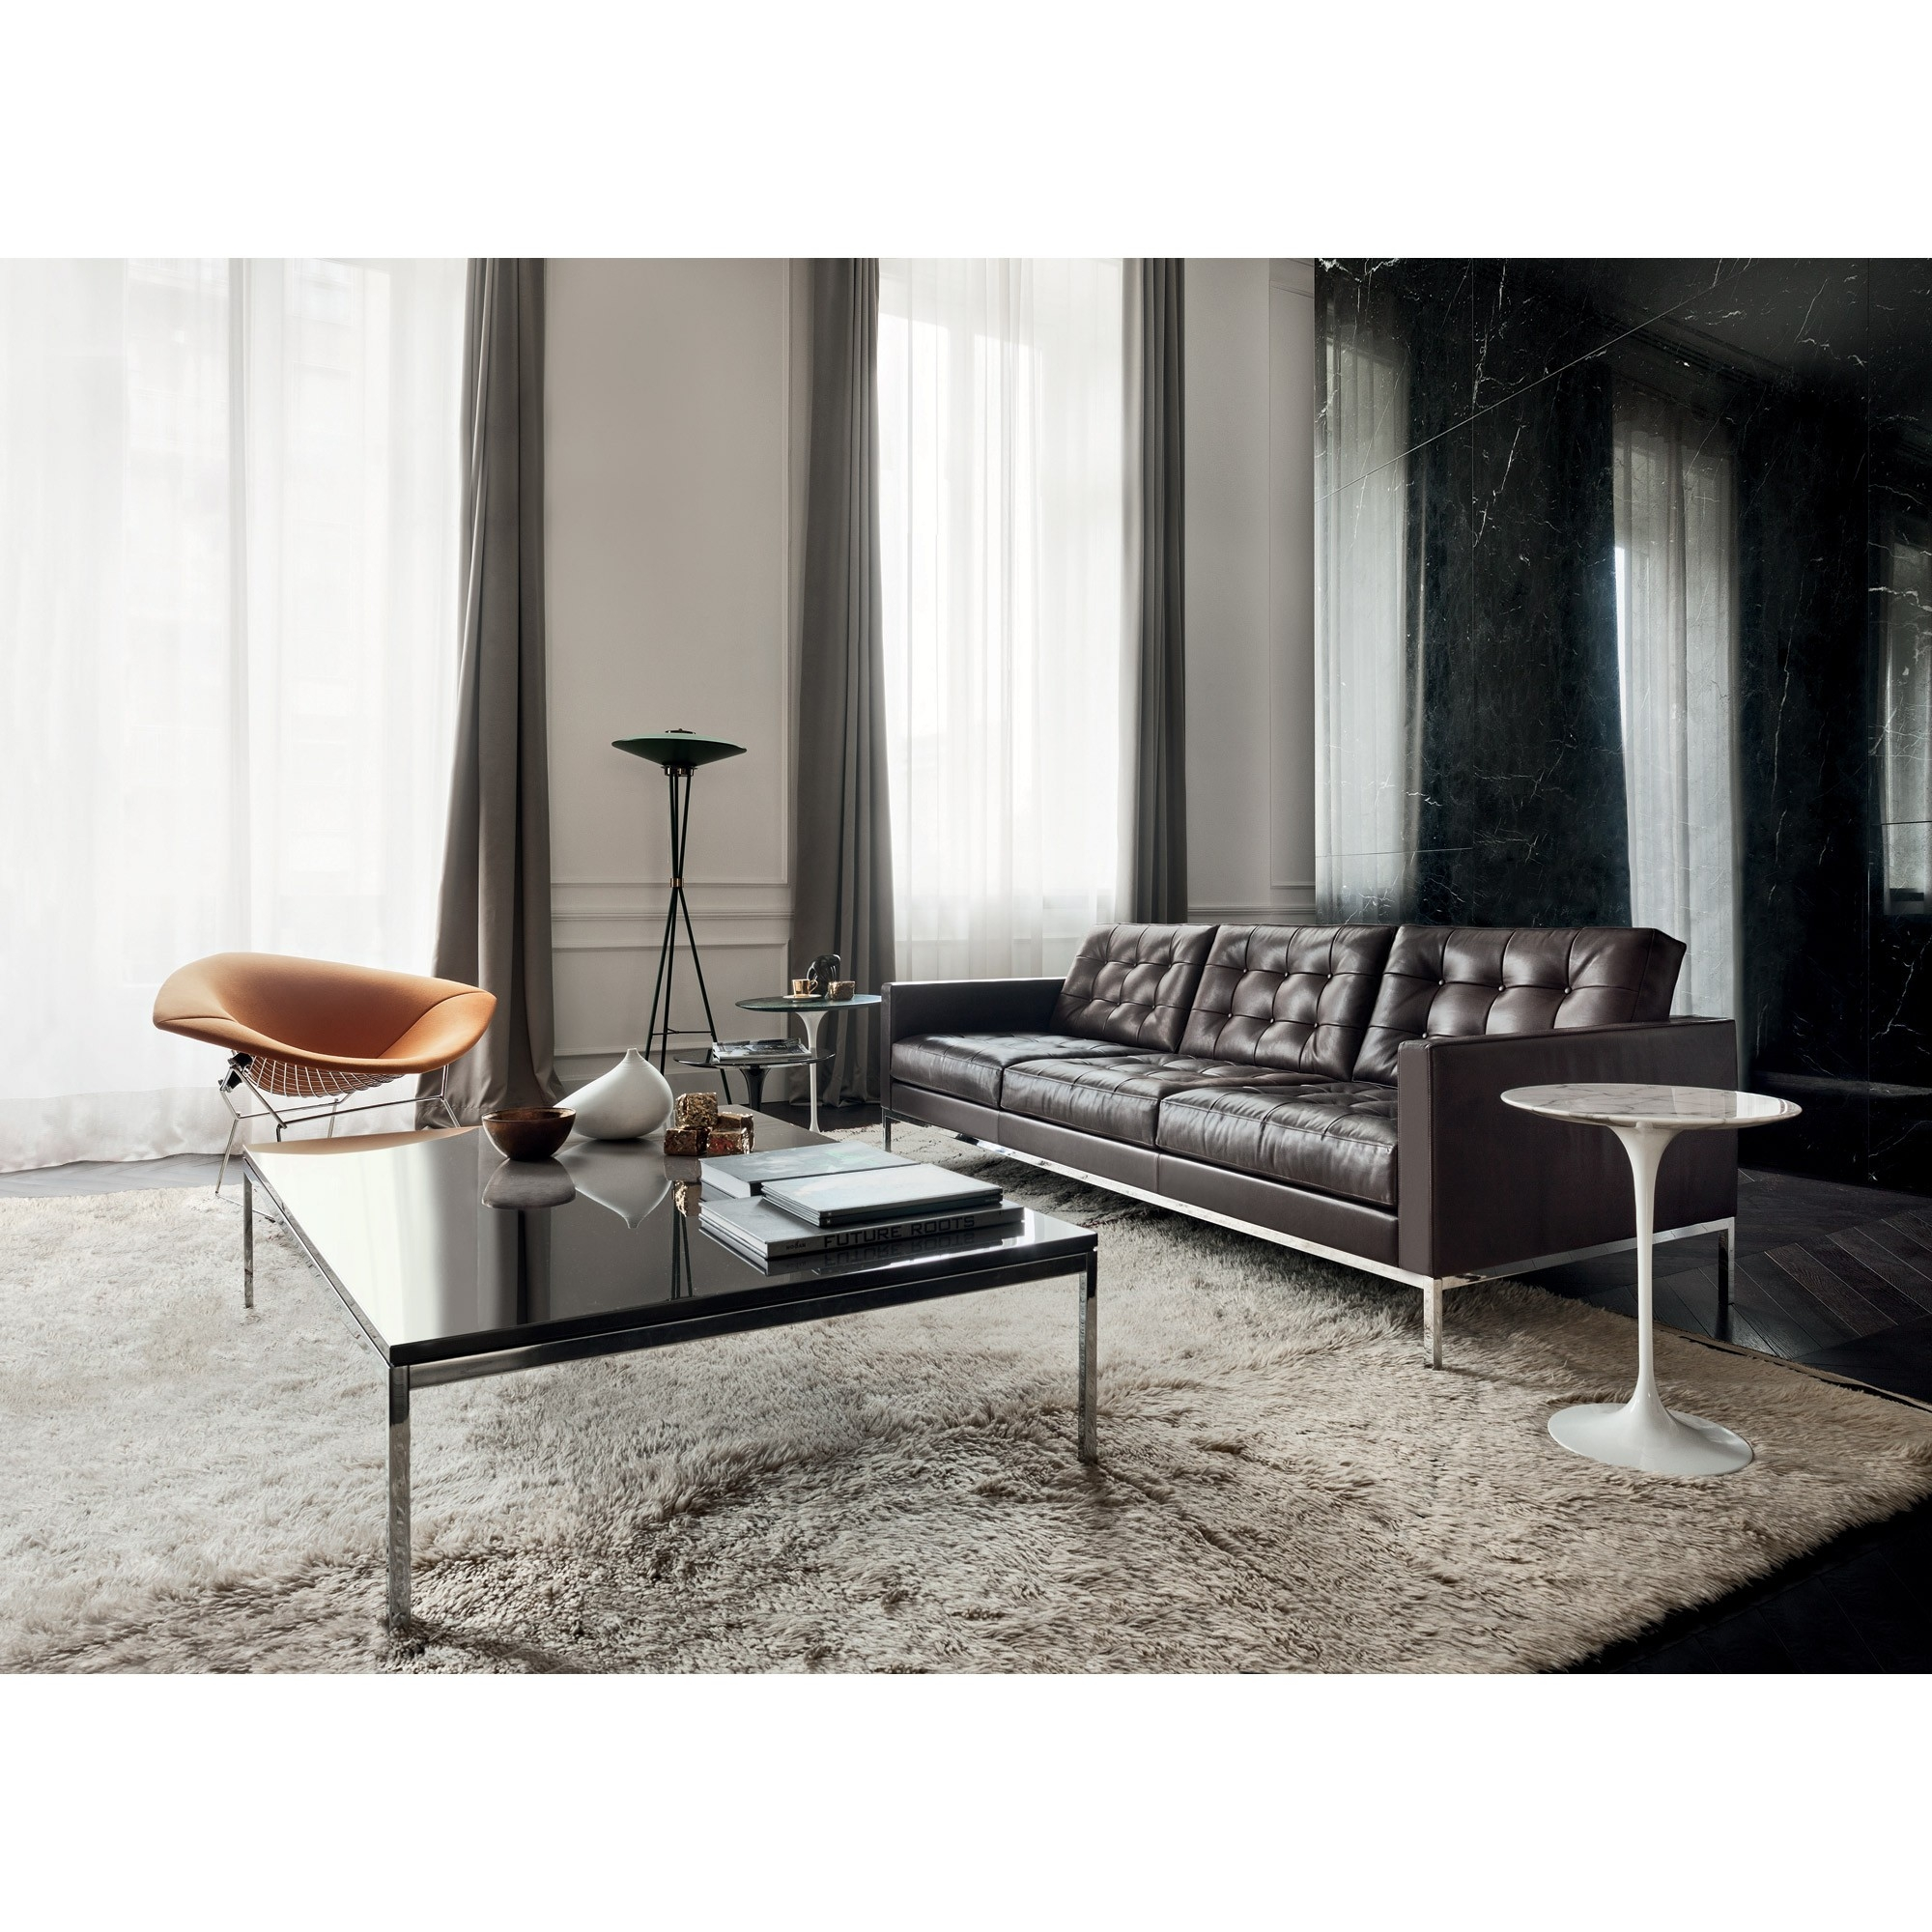 Natuzzi Editions Florence Leather Sofa Reviews Rs Gold Sofa Intended For Florence Sofas (Image 10 of 15)